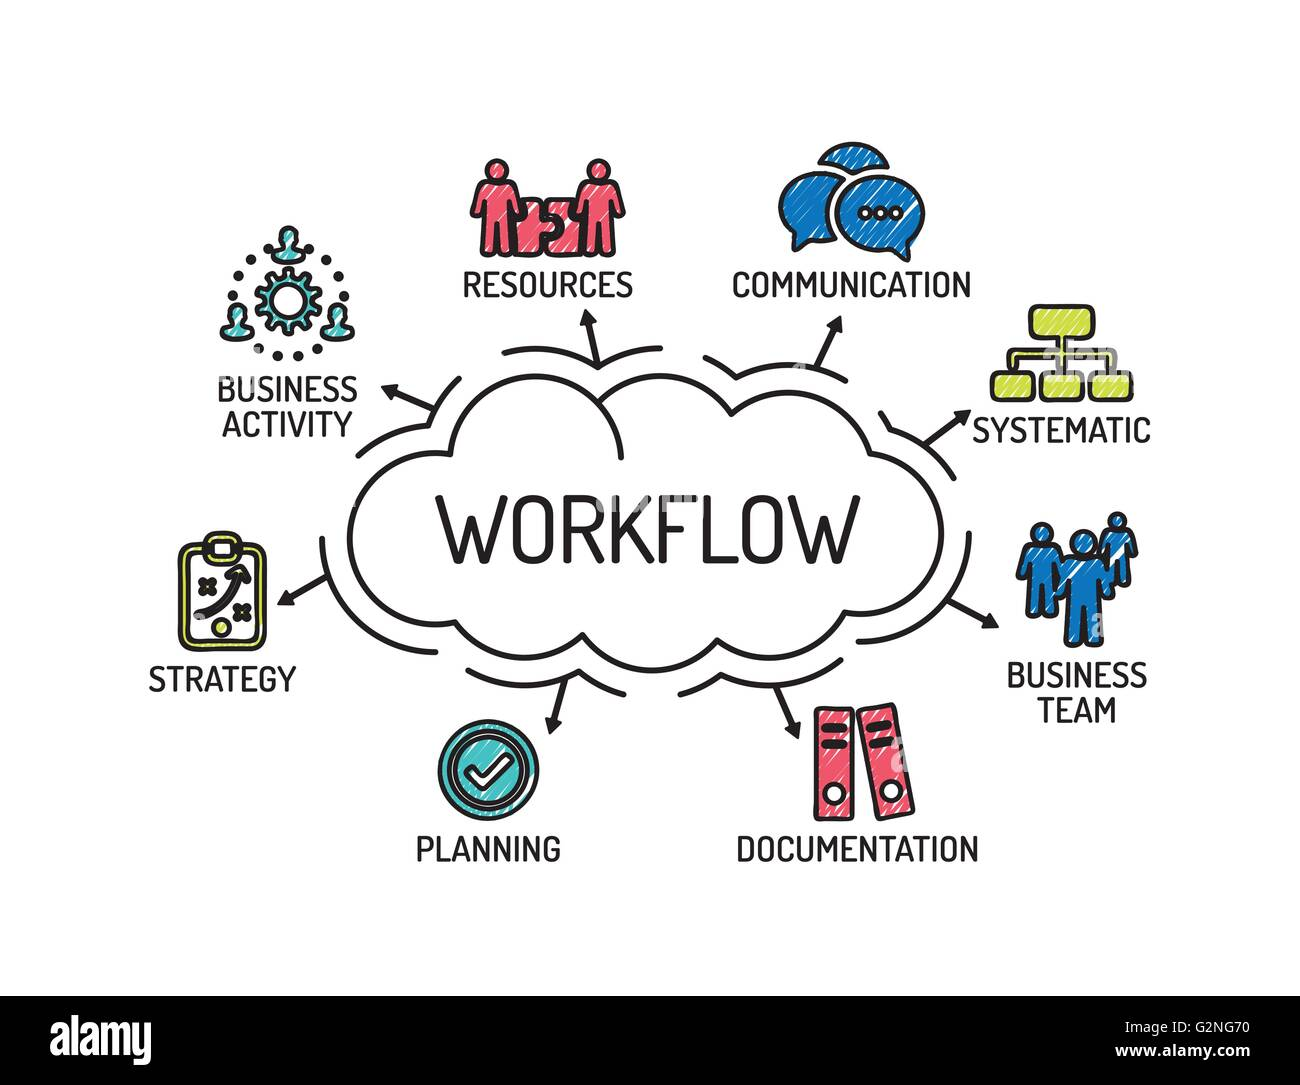 Workflow chart with keywords and icons sketch stock vector art workflow chart with keywords and icons sketch nvjuhfo Choice Image